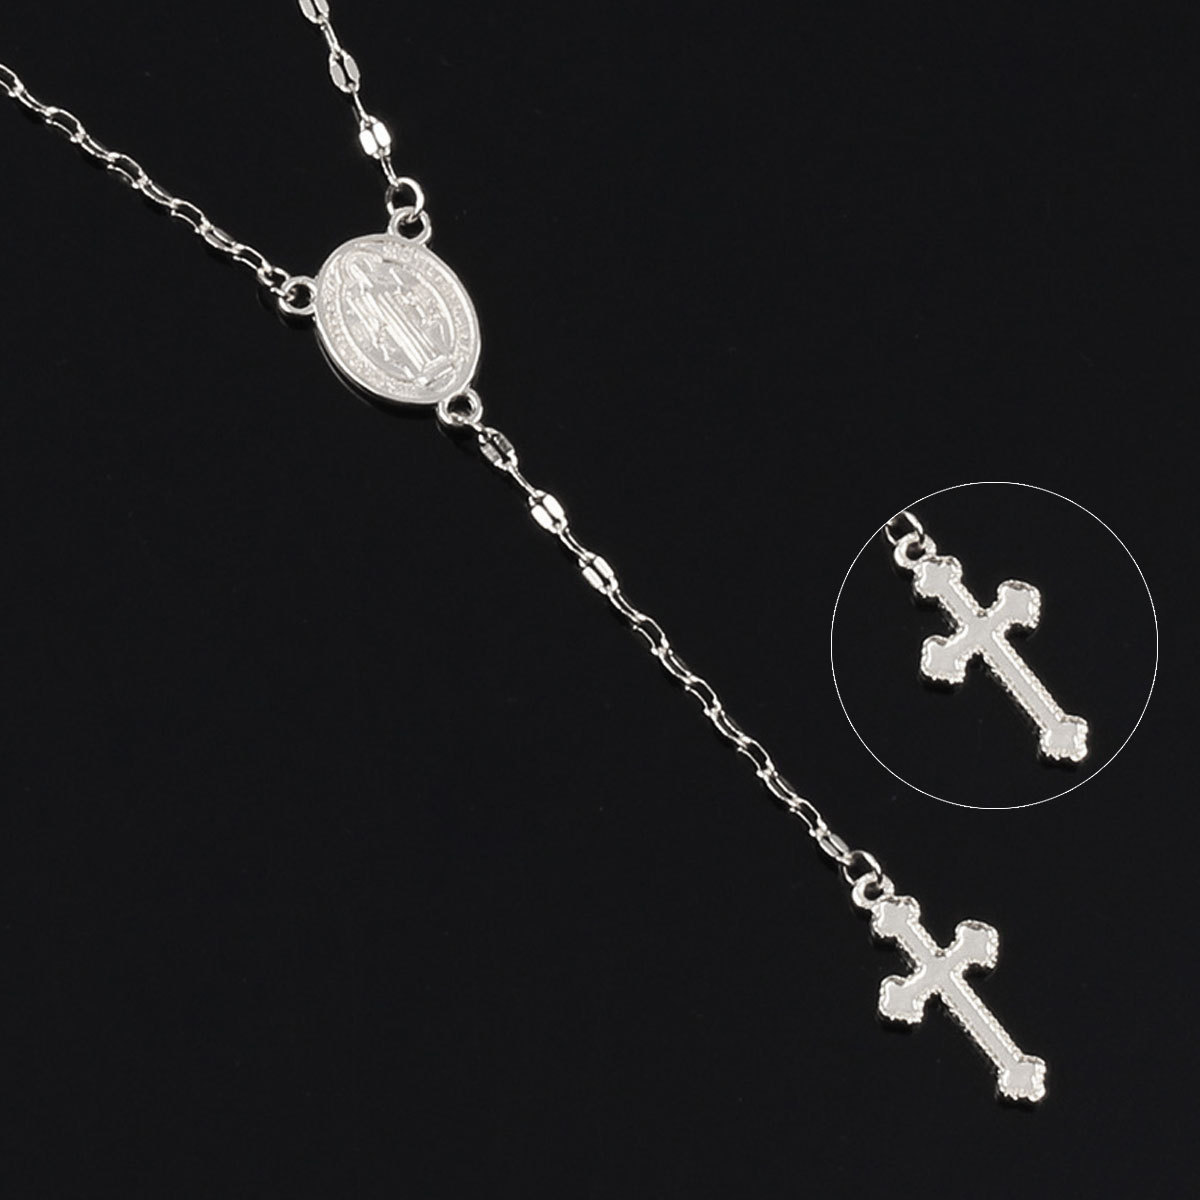 New Fashion Cross Pendant Necklace for Women Trendy Exquisite Medal Religious Long Chain Necklace Jewelry Collier Femme in Pendant Necklaces from Jewelry Accessories